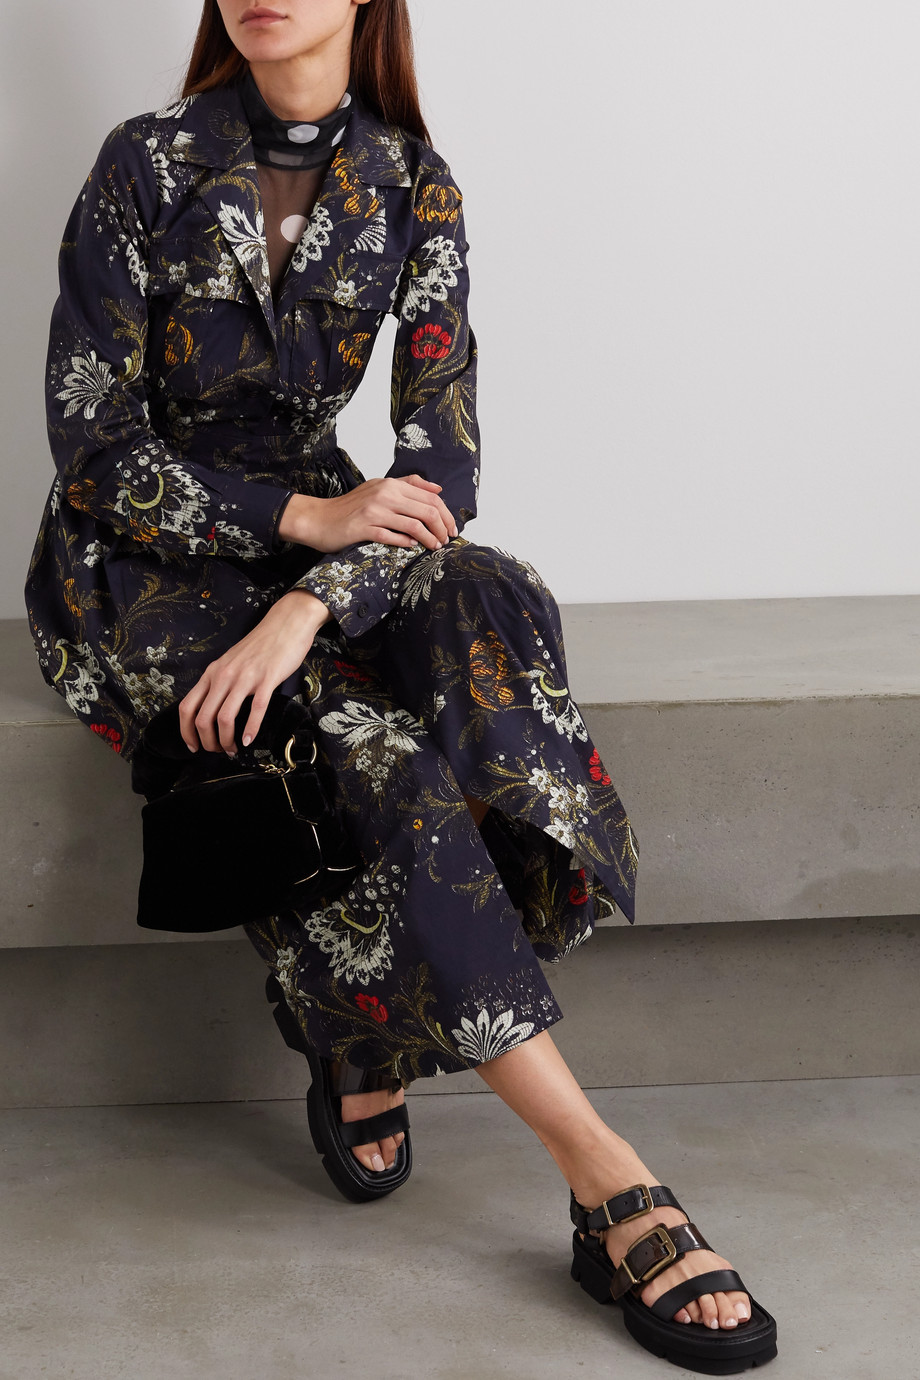 Dries Van Noten Floral-print cotton-jacquard shirt dress